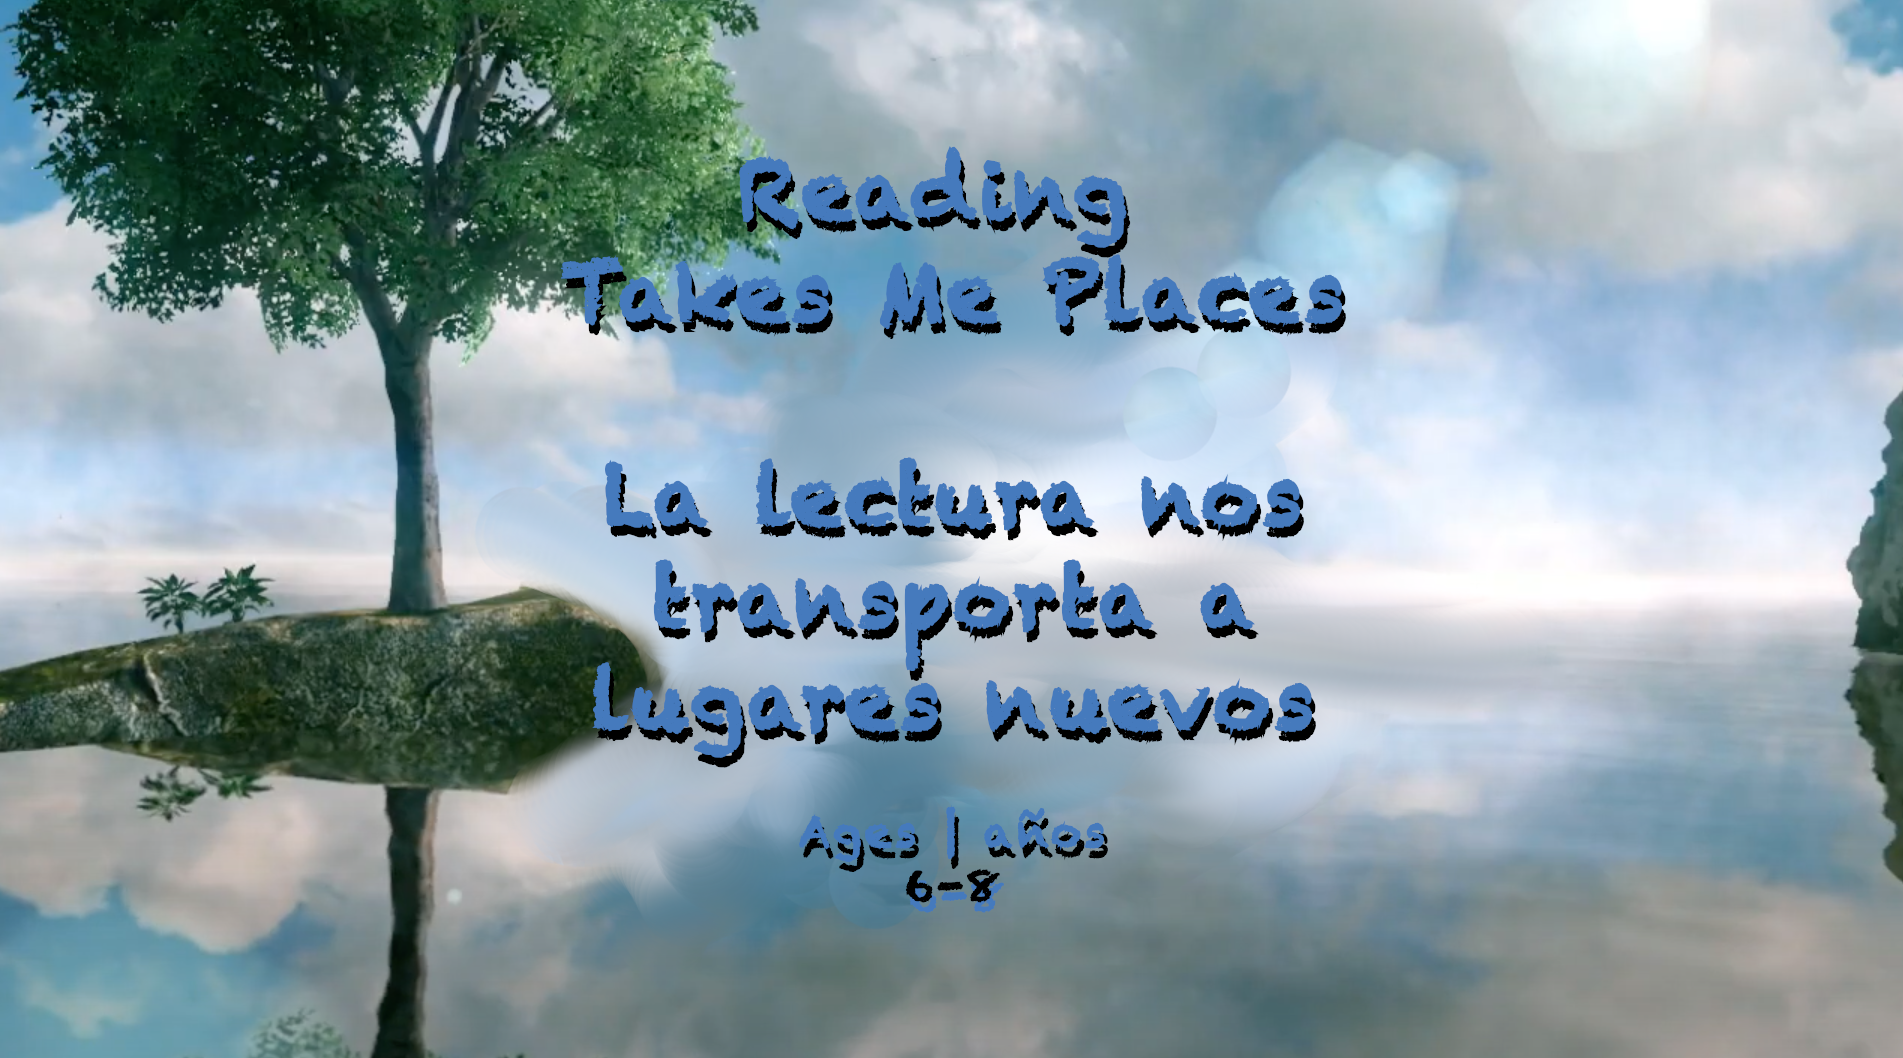 Weekly Themes #22 Reading Takes Me Places for 6-8 year olds